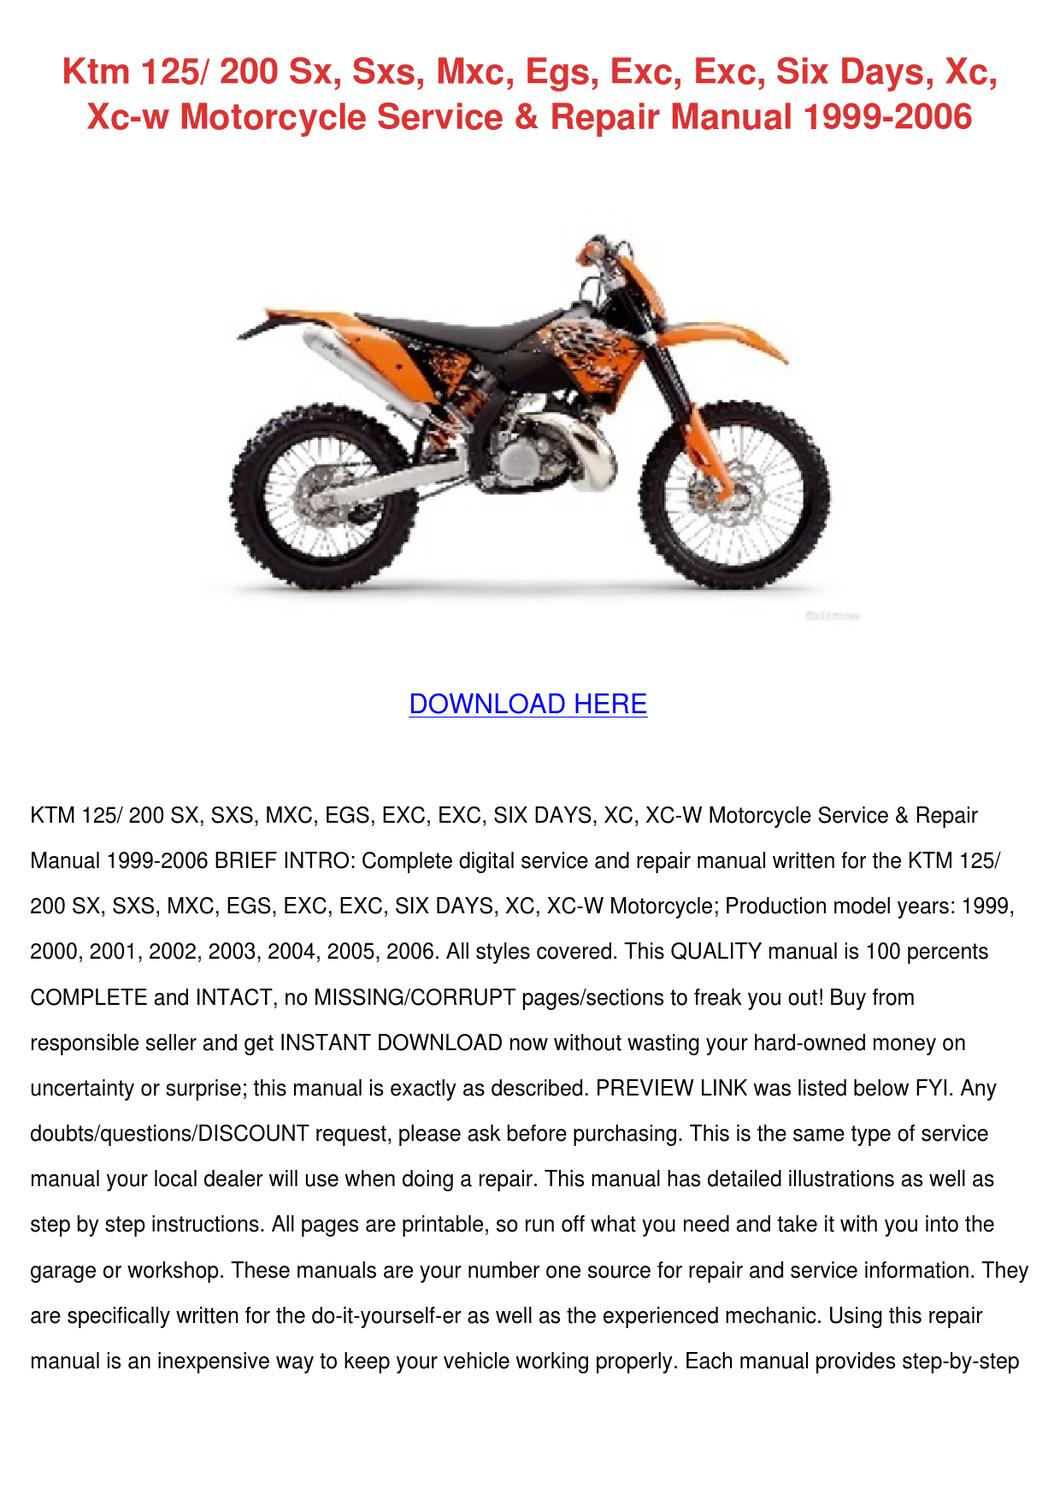 ktm 125 200 sx sxs mxc egs exc exc six days xc xc w motorcycle service  repair manual 1999 2006 by Juliana Troxler - issuu